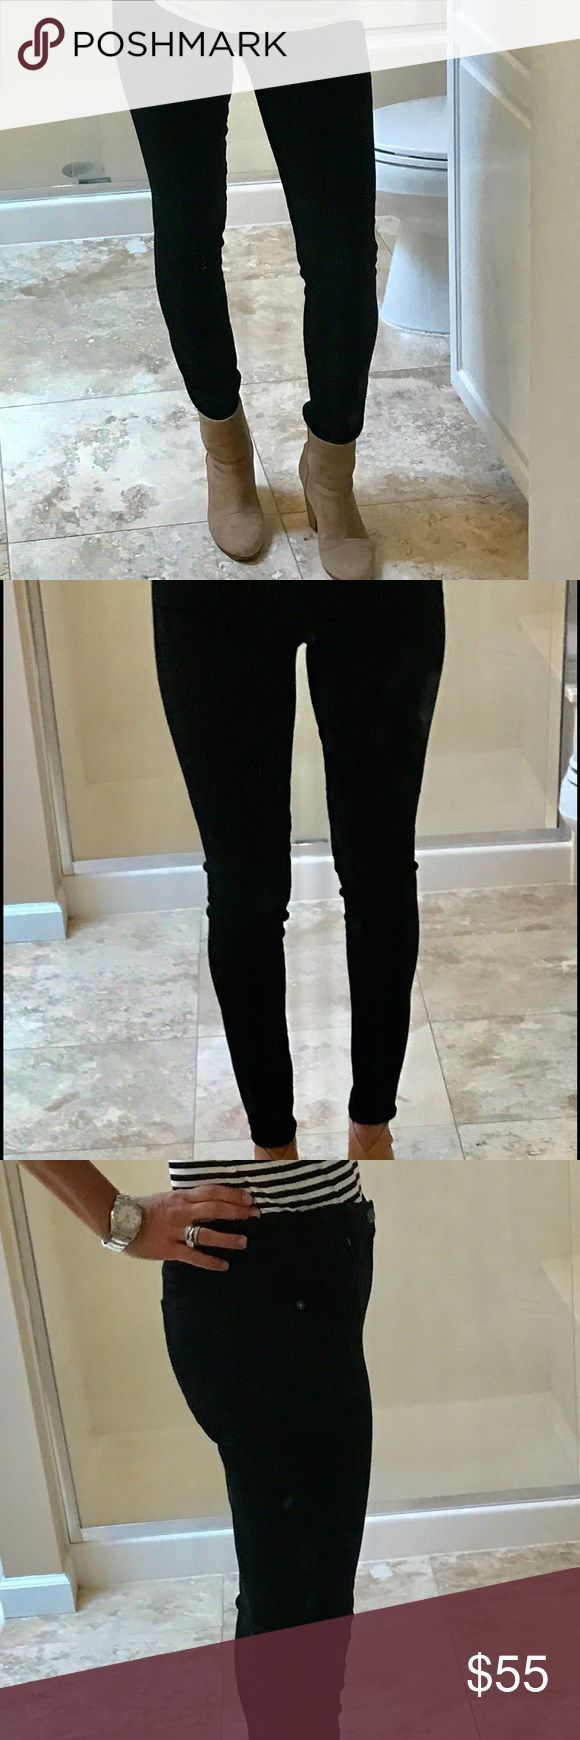 """Citizens of Humanity Avedon Slick Skinny Leg Jean Near Perfect Condition.  The name of this black Avedon jean does not lie - """"slick skinny leg"""" is true as can be.  There is some stretch but the jeans are very fitted, especially in thighs and legs.  I am normally a 28/29 and I had to buy these in 31!  Ankle length; black; 5 pocket.  Very soft fabric.  Purchased at very luxurious department store in Düsseldorf, Germany. Citizens of Humanity Jeans Skinny"""